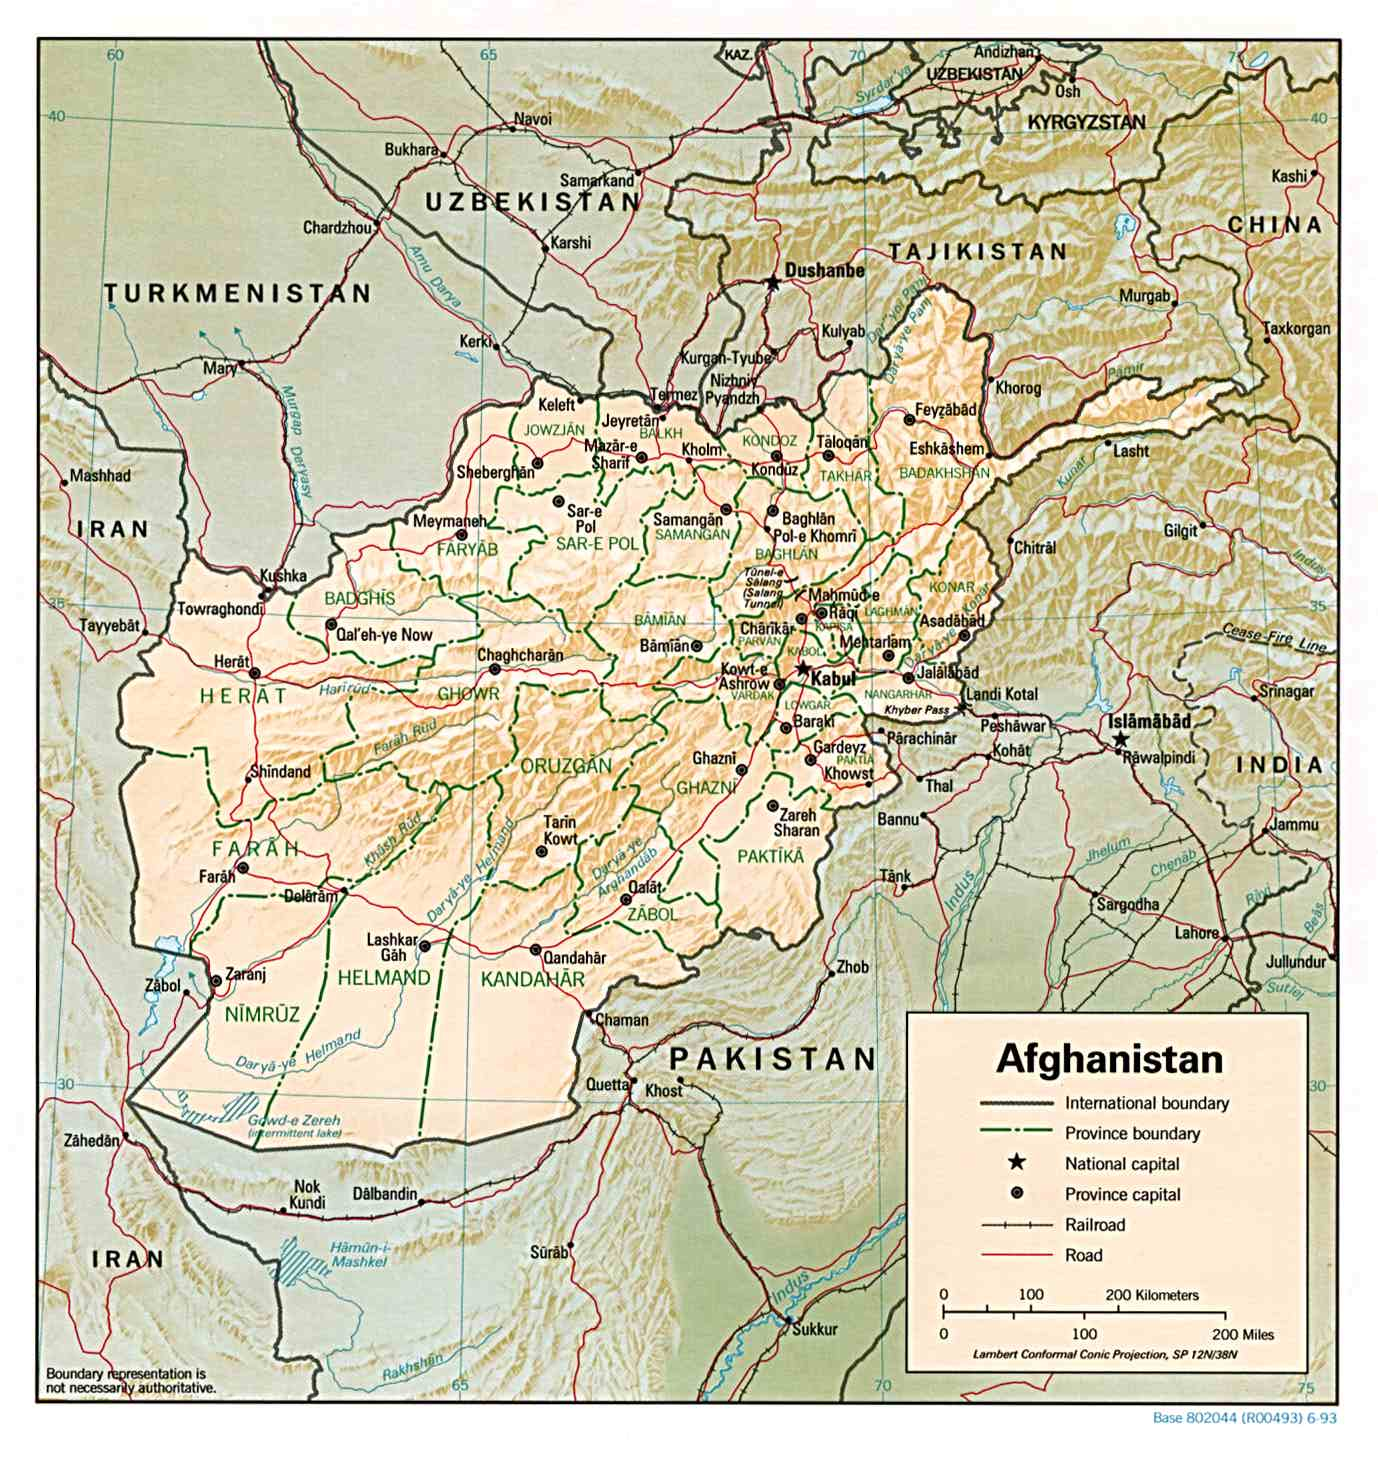 Index Of Mapsmiddleeastandasia - Pictures of maps